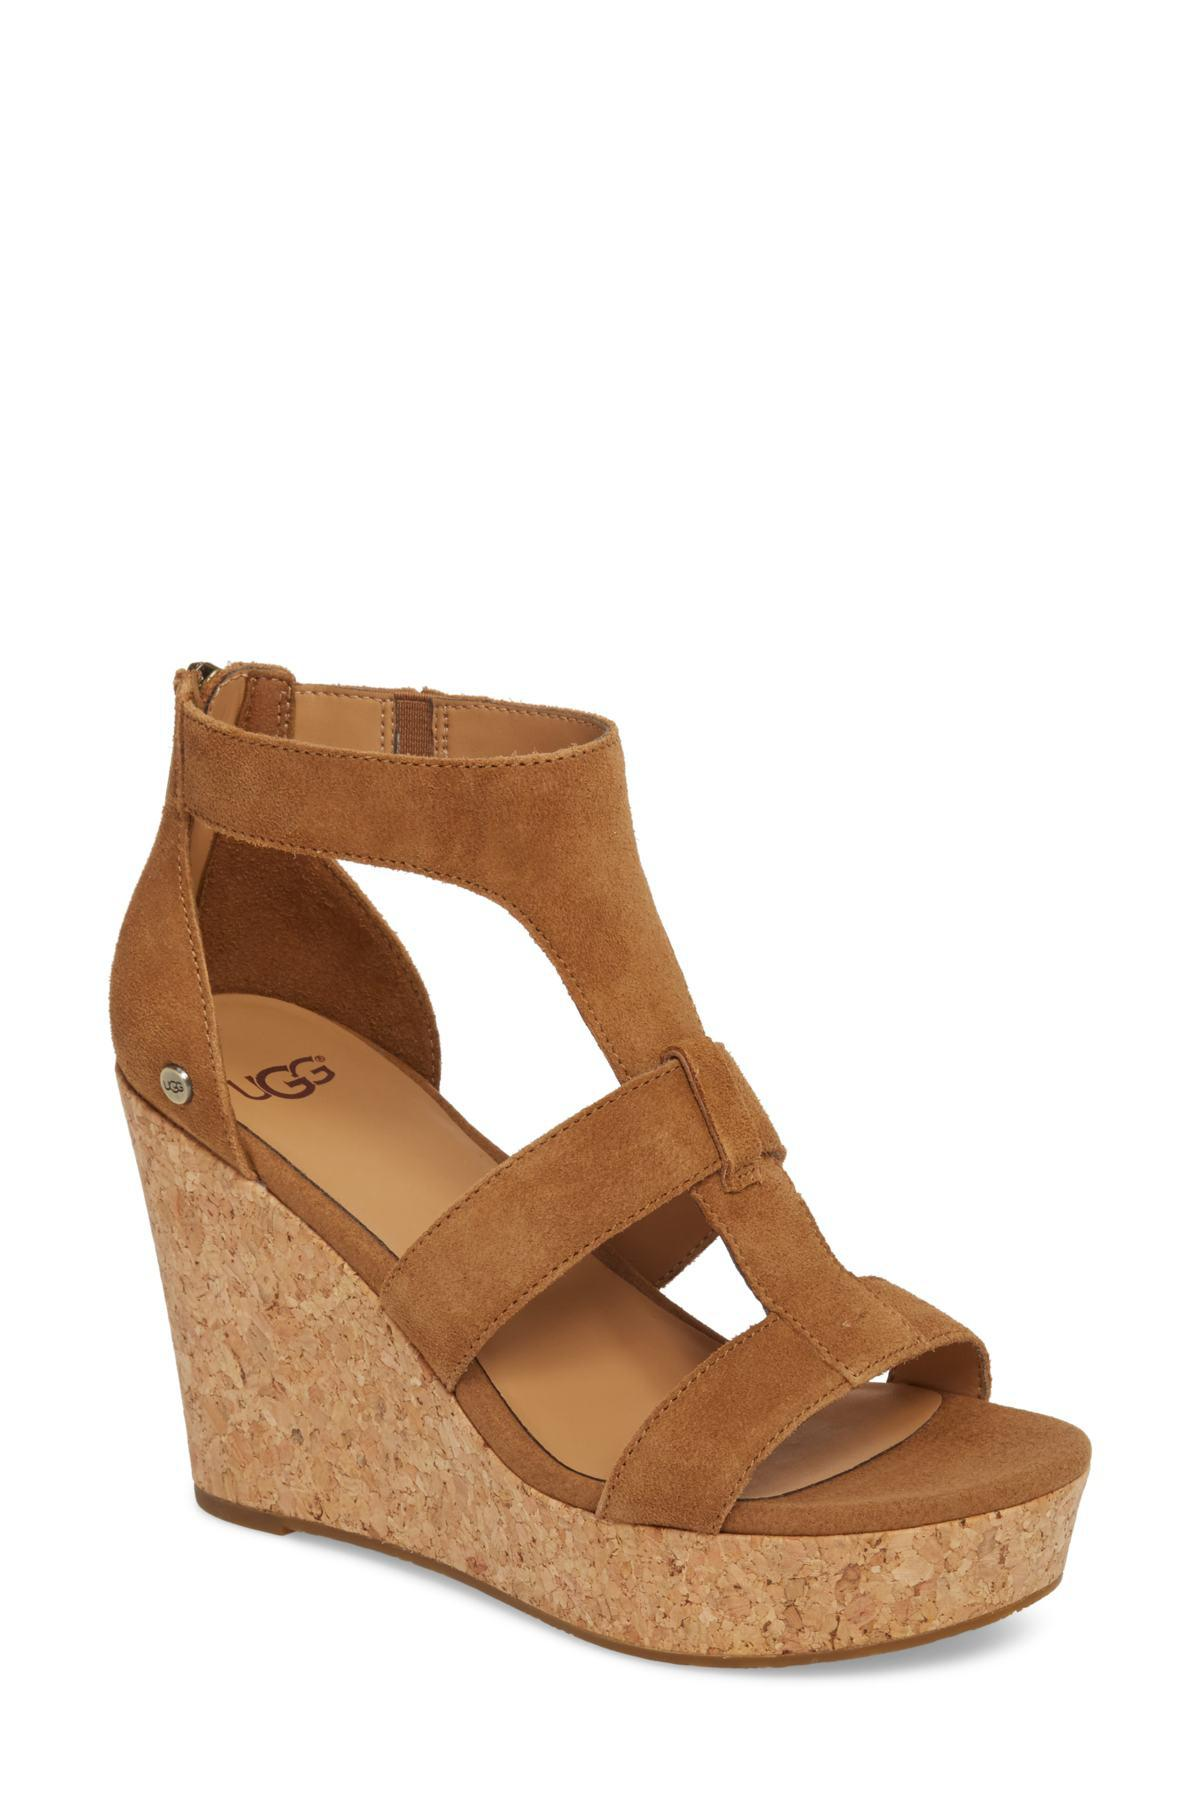 479a8a794f41 Lyst - UGG Whitney Platform Wedge Sandal in Brown - Save 45%